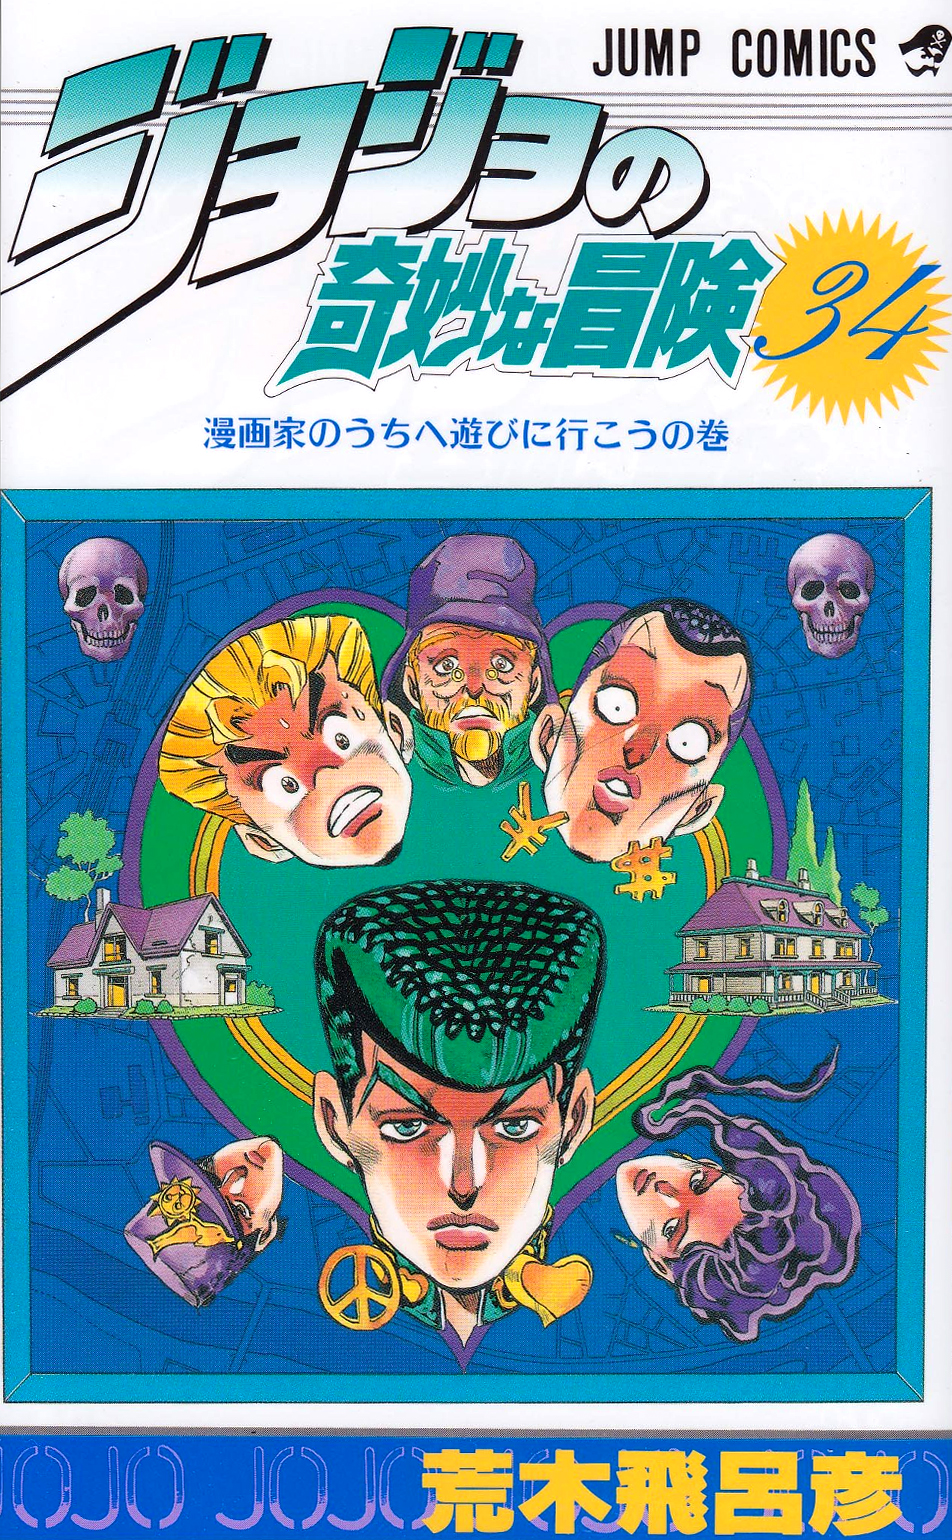 http://vignette3.wikia.nocookie.net/jjba/images/9/90/Volume_34.jpg/revision/latest?cb=20120215020032